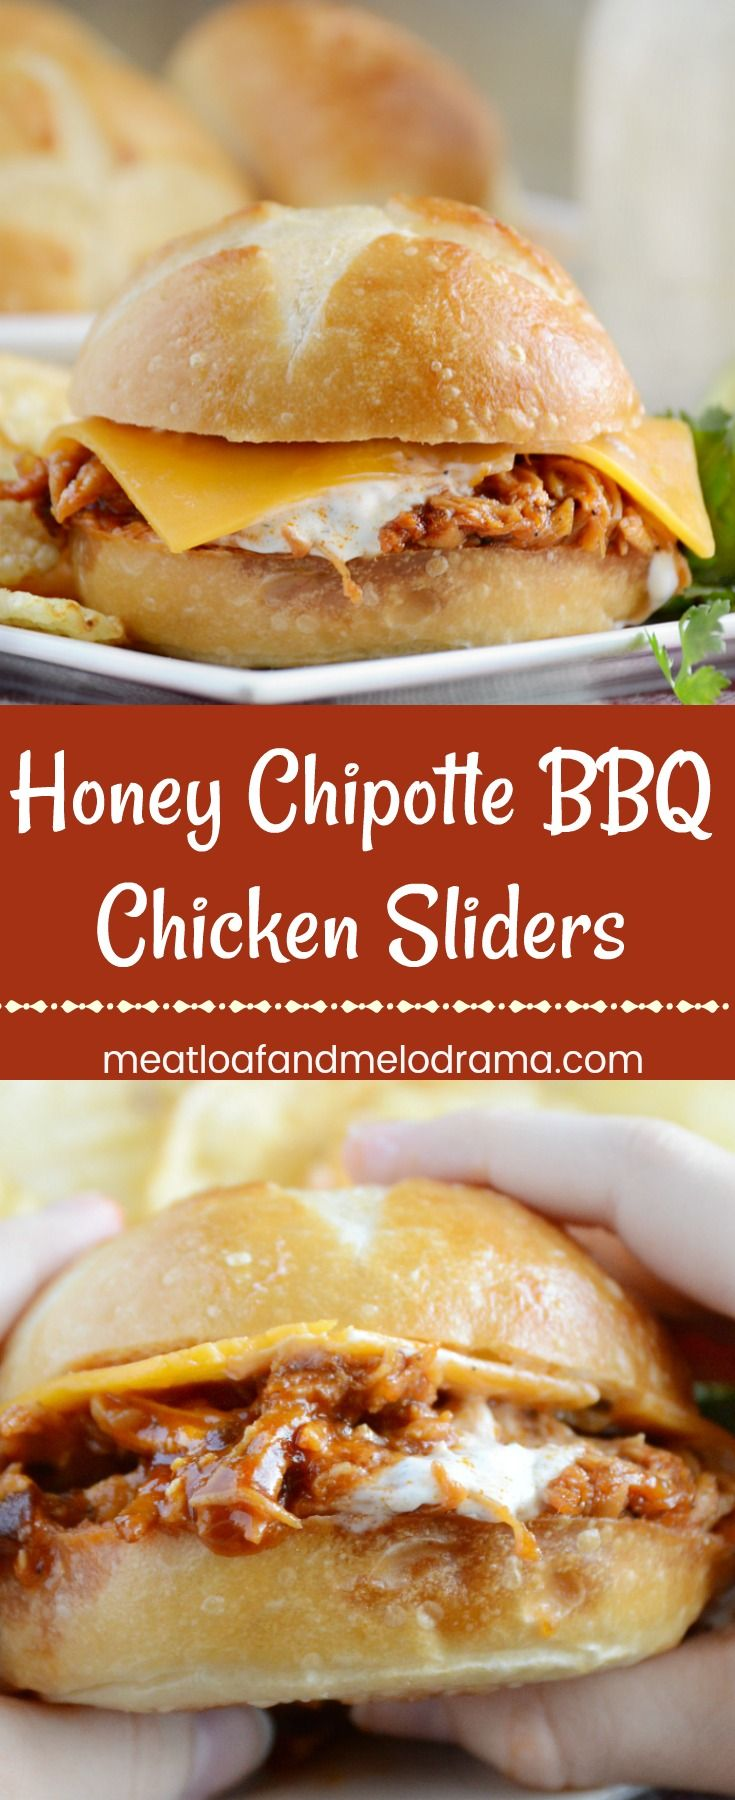 Honey Chipotle BBQ Chicken Sliders -  Quick and easy dinner or gameday appetizer made with shredded chicken in a sweet and spicy barbecue sauce and topped with cheddar cheese and ranch dressing. Cooks in the Crock-Pot. Let your slow cooker do the work! from Meatloaf and Melodrama